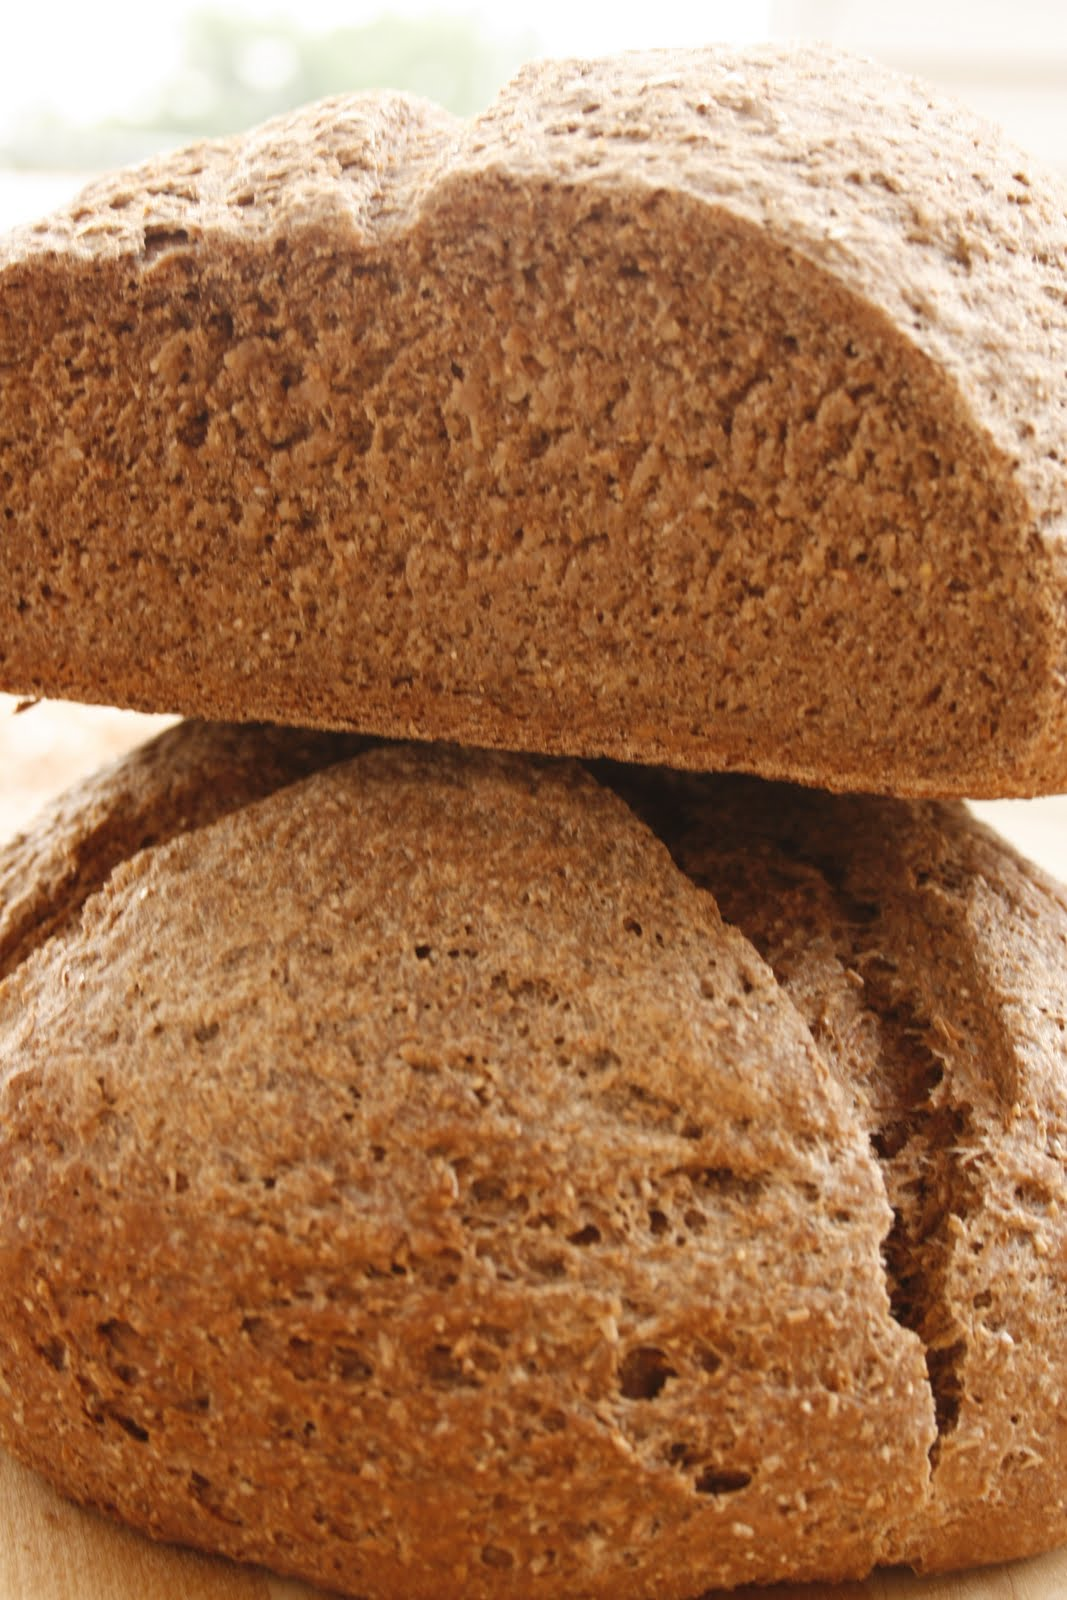 Laura's Sweet Spot: Russian Black Bread